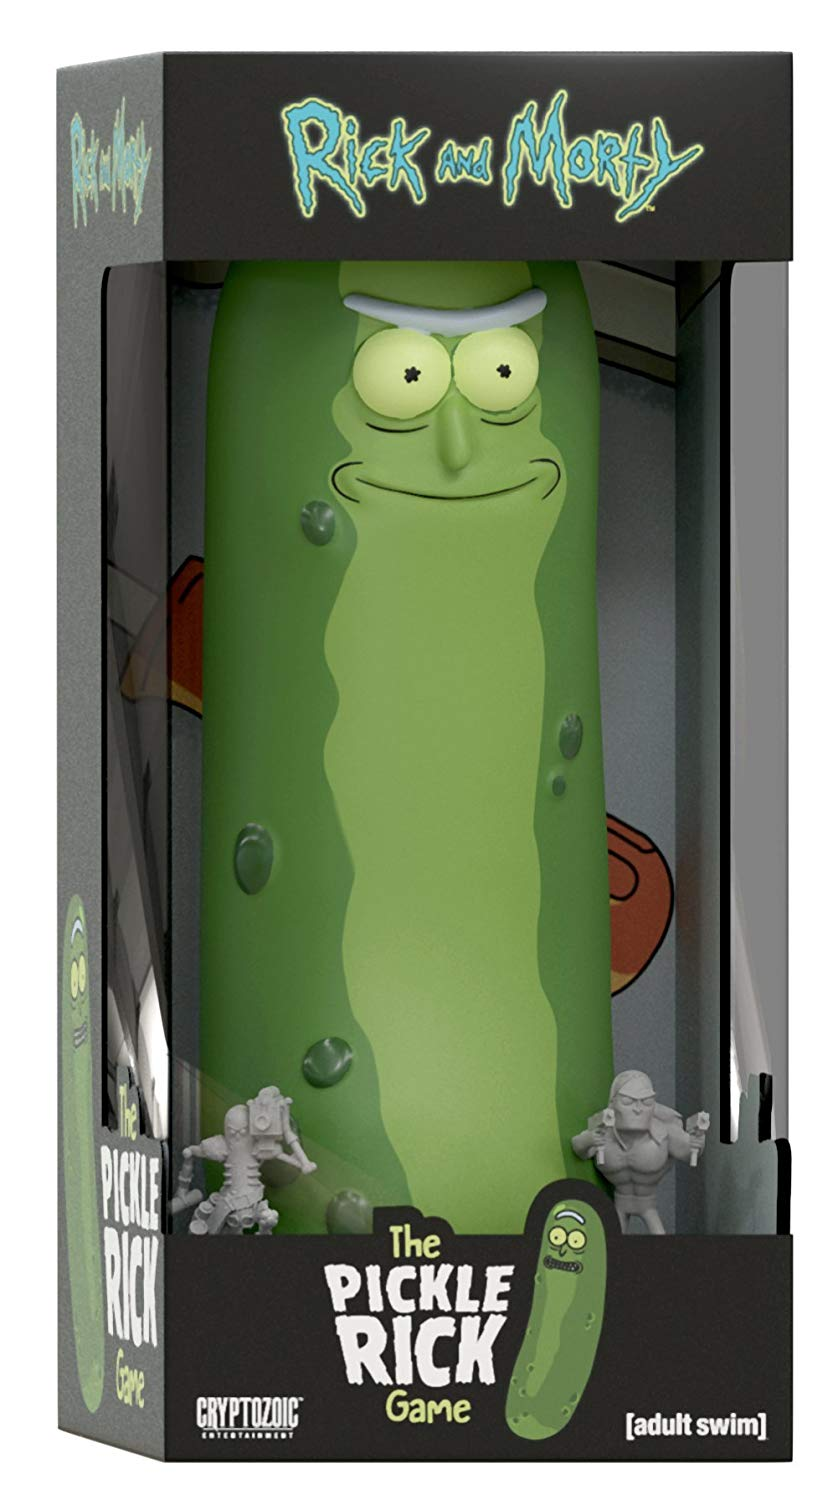 The Pickle Rick Game